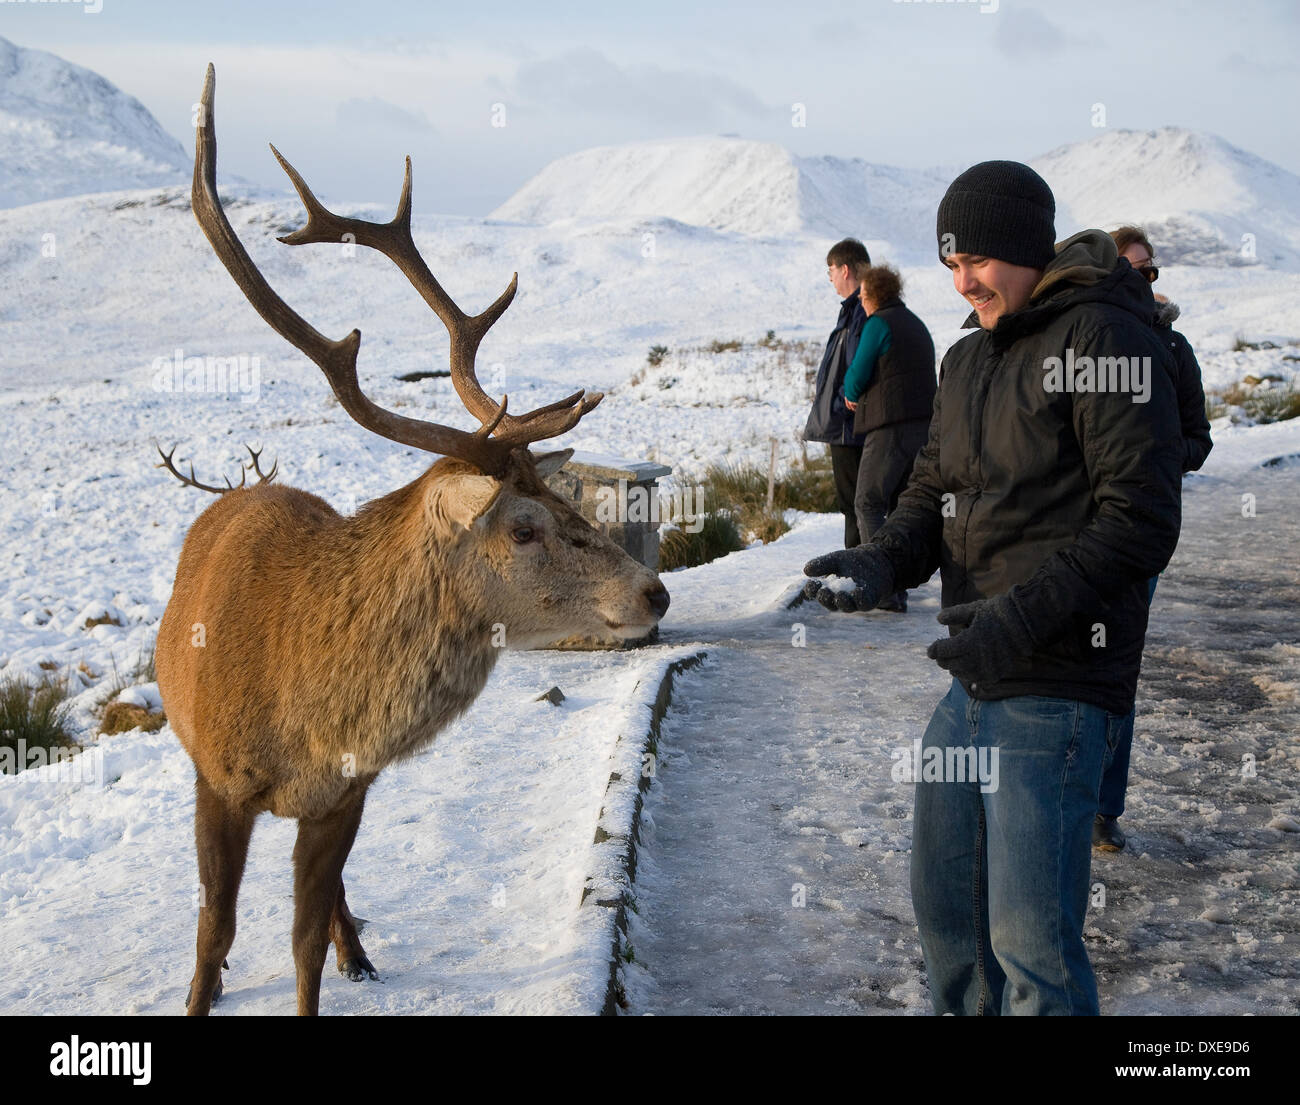 Tourist interact with Stags on Rannoch Moor, Scottish Highlands. - Stock Image